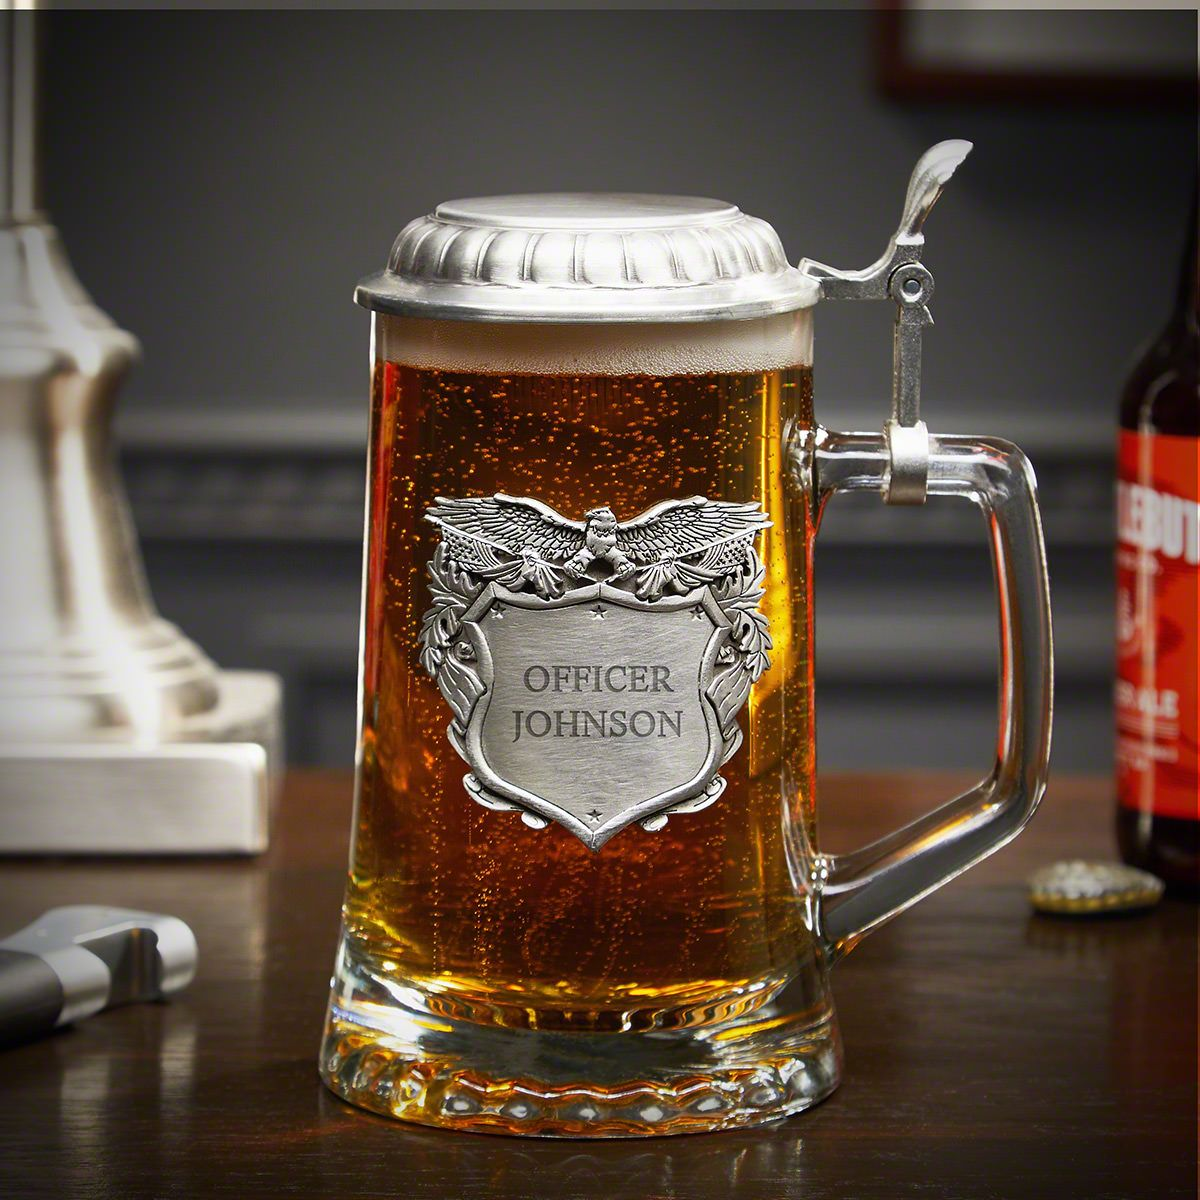 land-of-the-brave-custom-beer-stein-gift-for-police-officers-p-7506